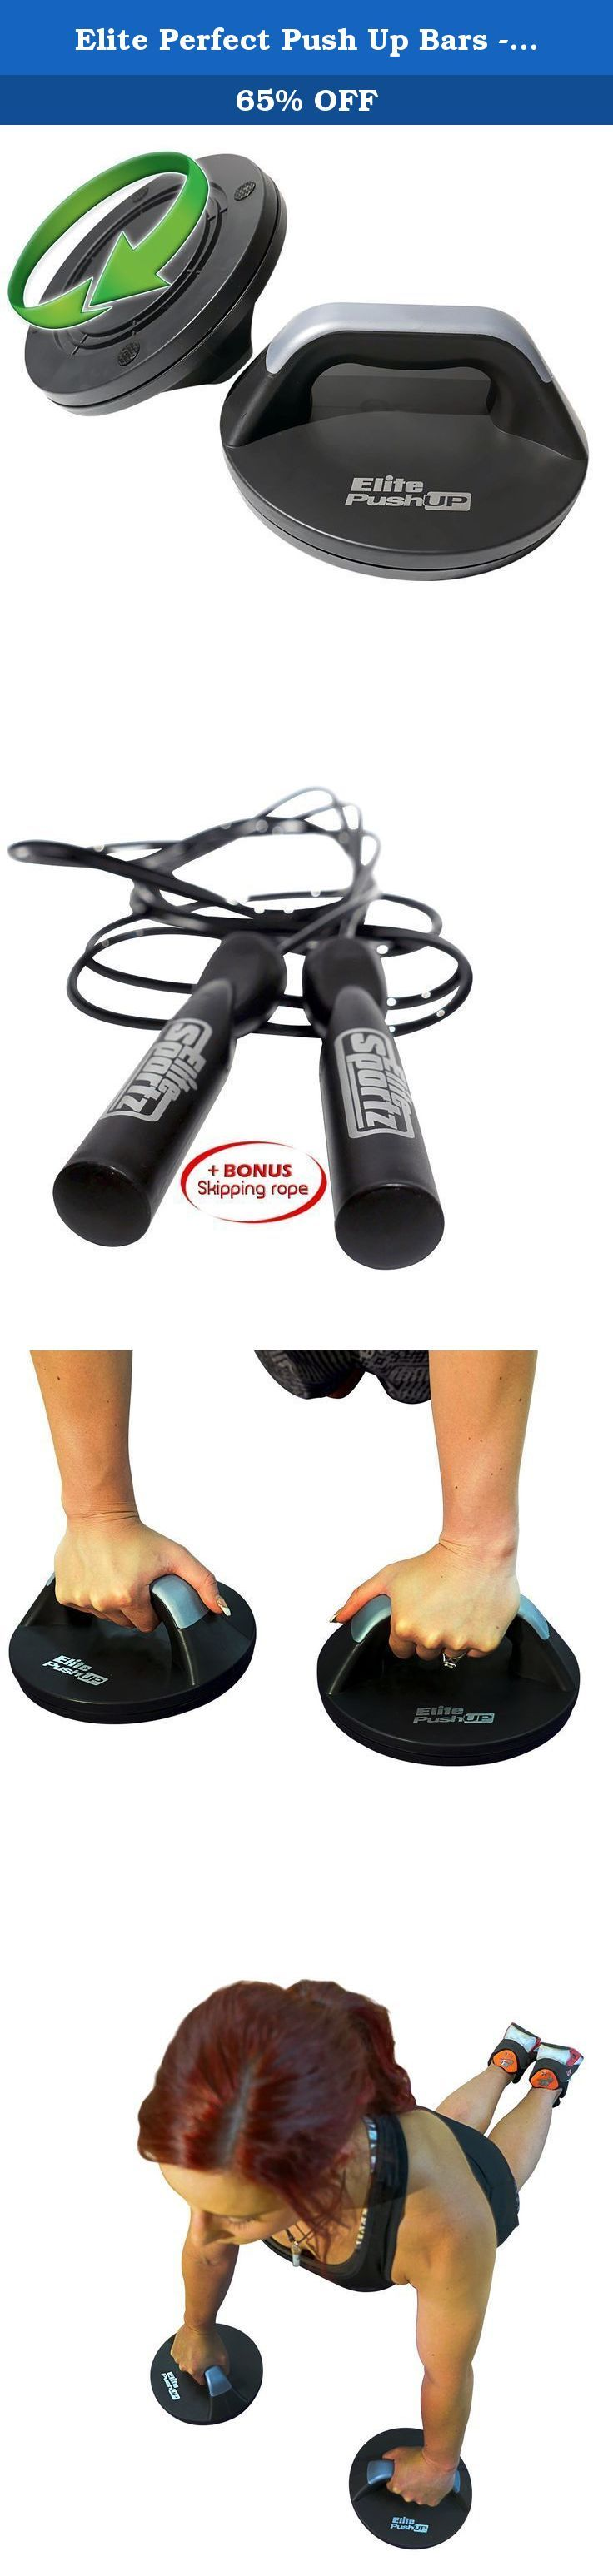 Elite Perfect Push Up Bars - Comfortable Rotating Push Up Handles, Comes Fully Assembled, Reduced Strain on the Wrists and includes a Skipping Rope. Are You Looking to Add Some Serious Muscle to Your Upper Body and Some Awesome Core Strength?....All While Looking After of Your Wrists Benefits: - Add Muscle Fast - Get Stronger Faster - Better Sporting Performance - Great Looking Upper Body - Way More Comfortable - Reduced Risk of Wrist Injury or Pain - Train Whenever You Want - Increased...